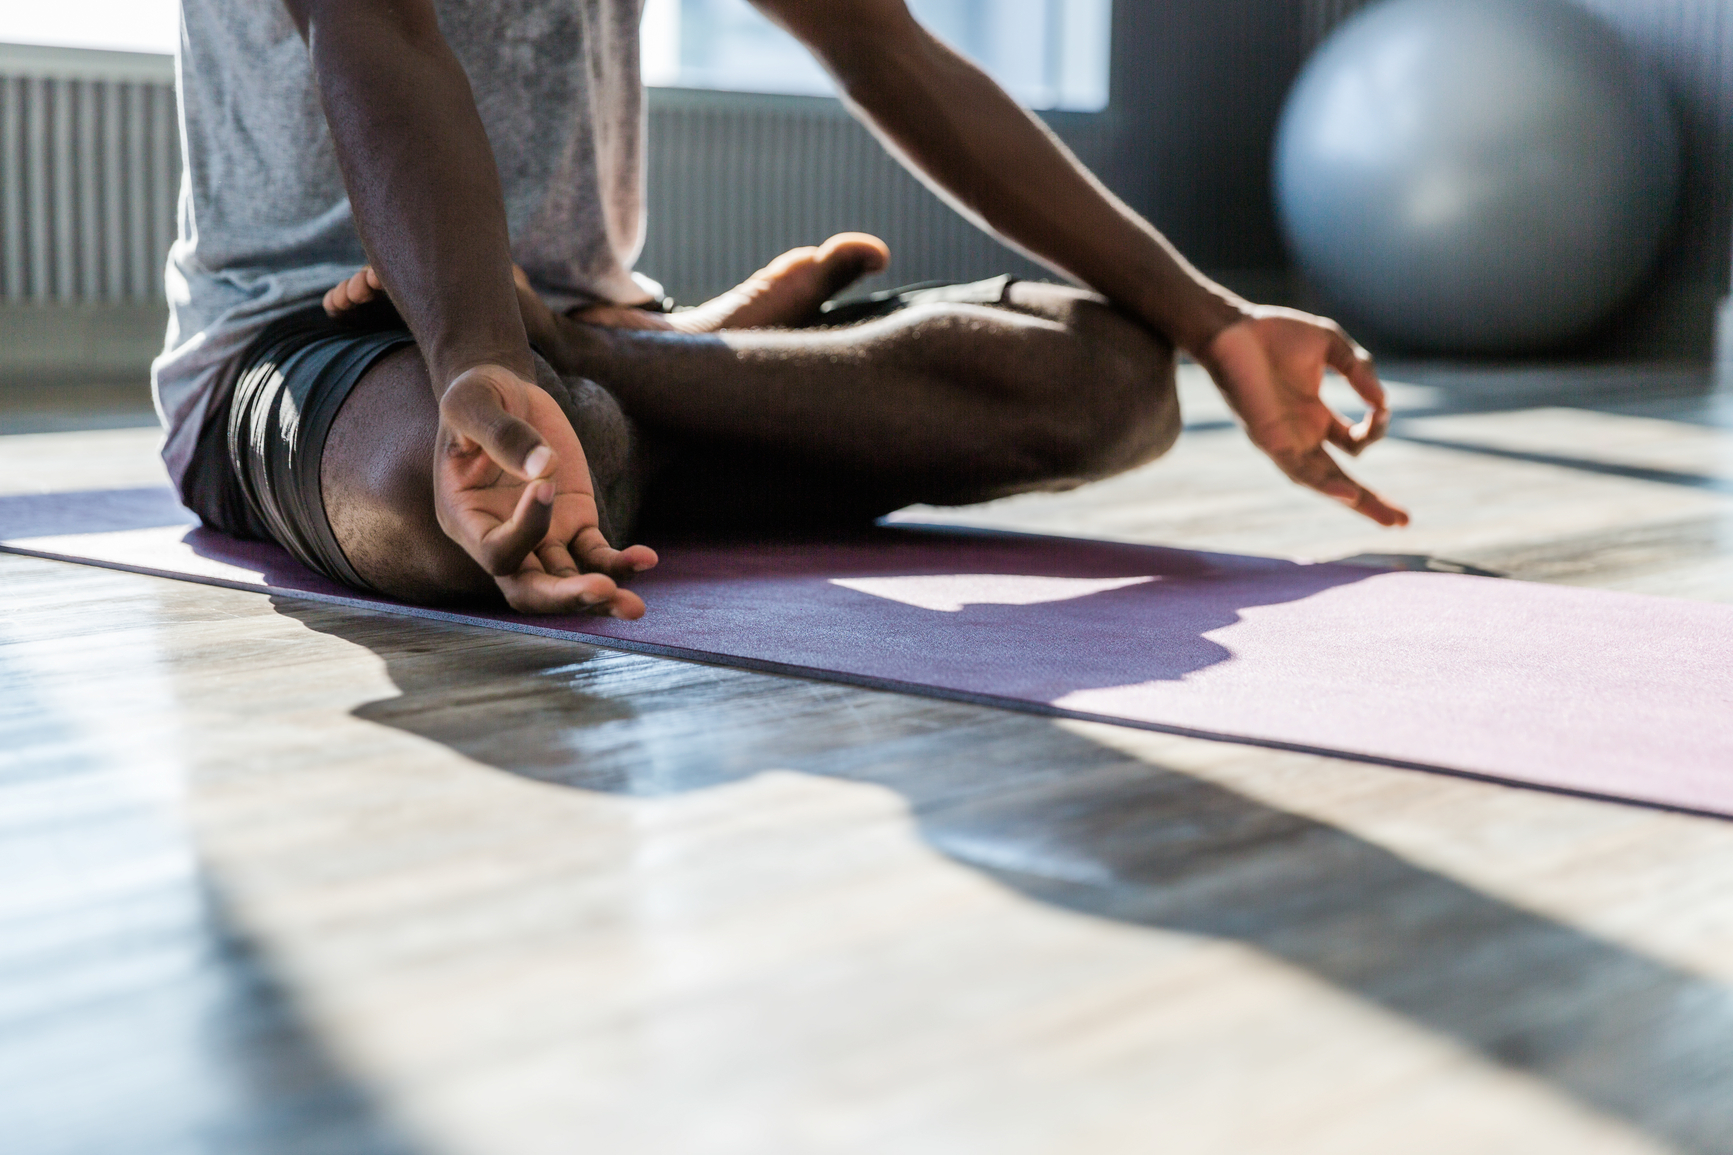 Closeup of a man meditating in a bright and modern yoga studio